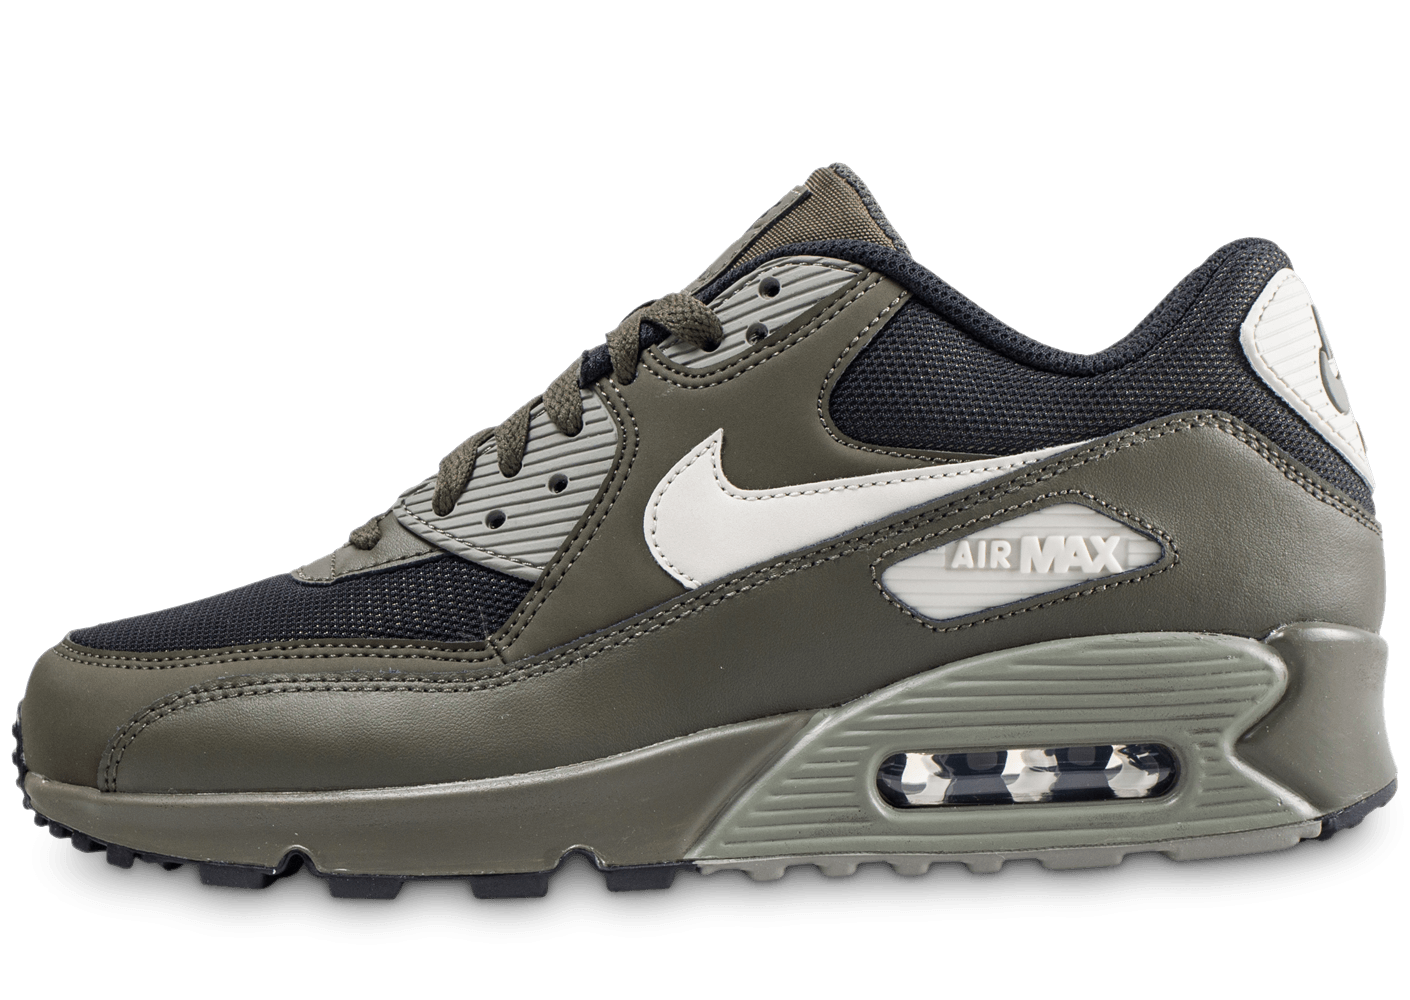 air max homme 90 kaki